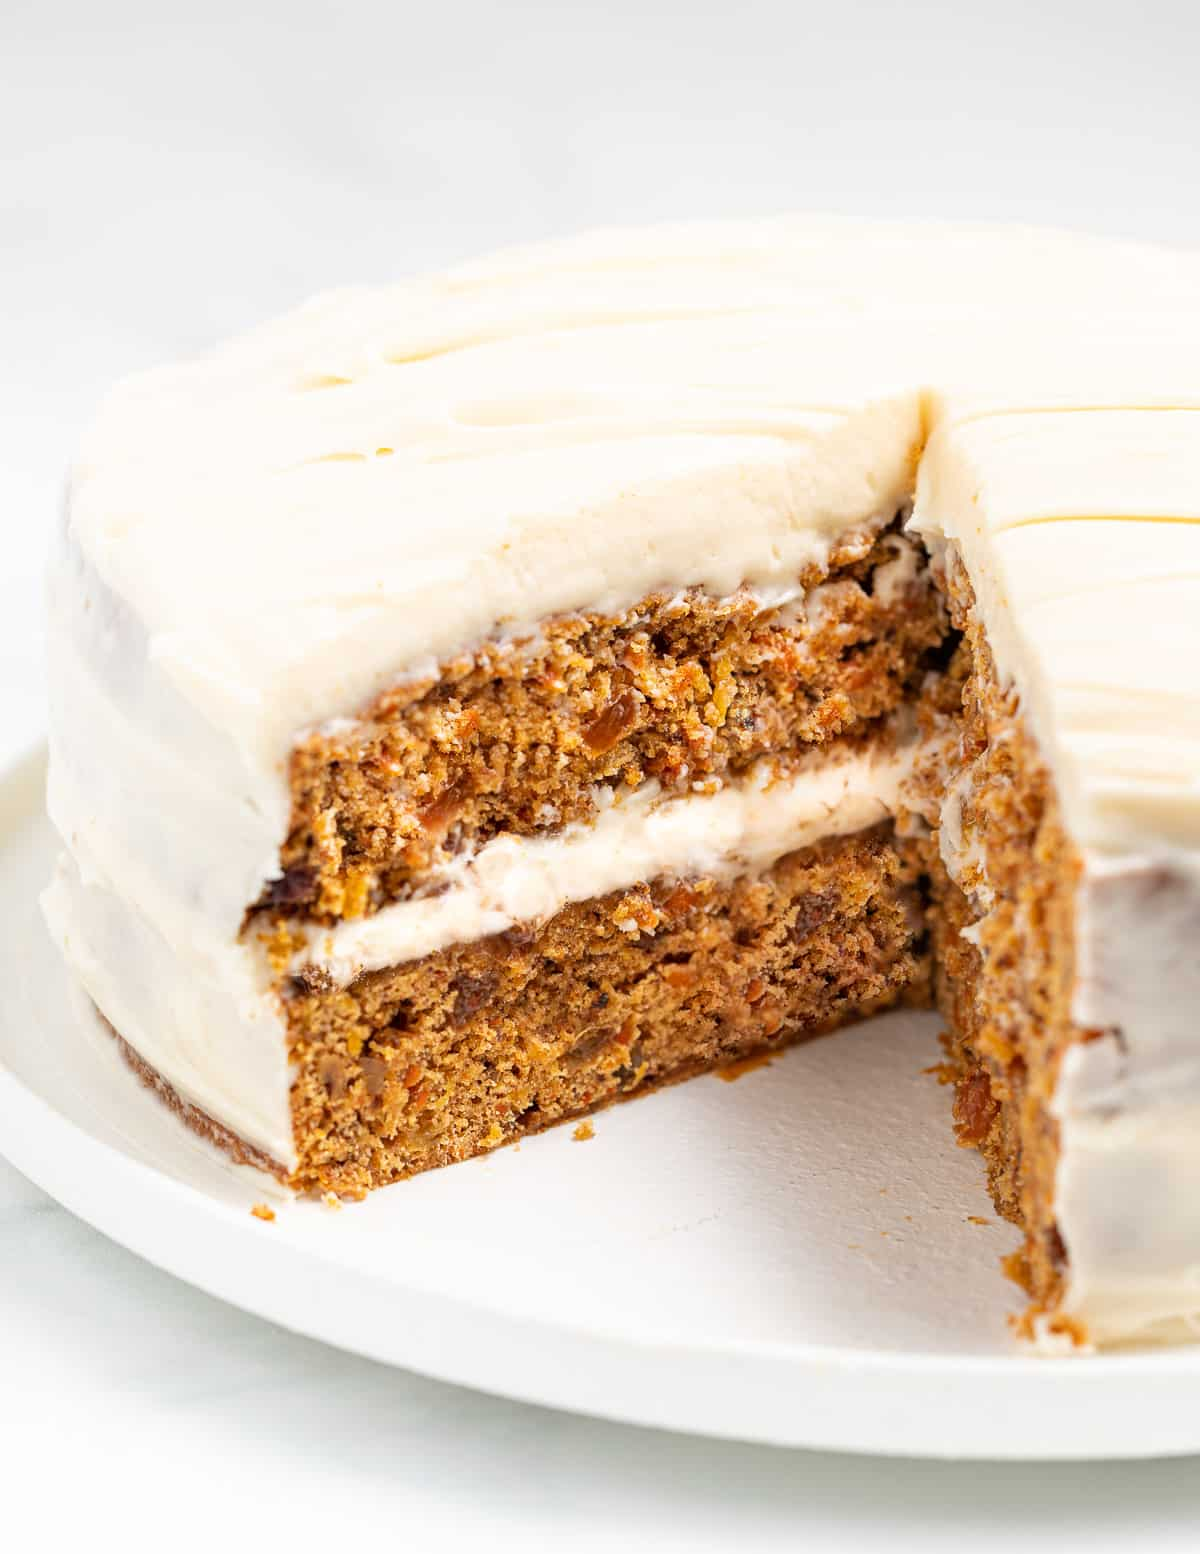 a carrot cake with a big slice taken out so inside is visible